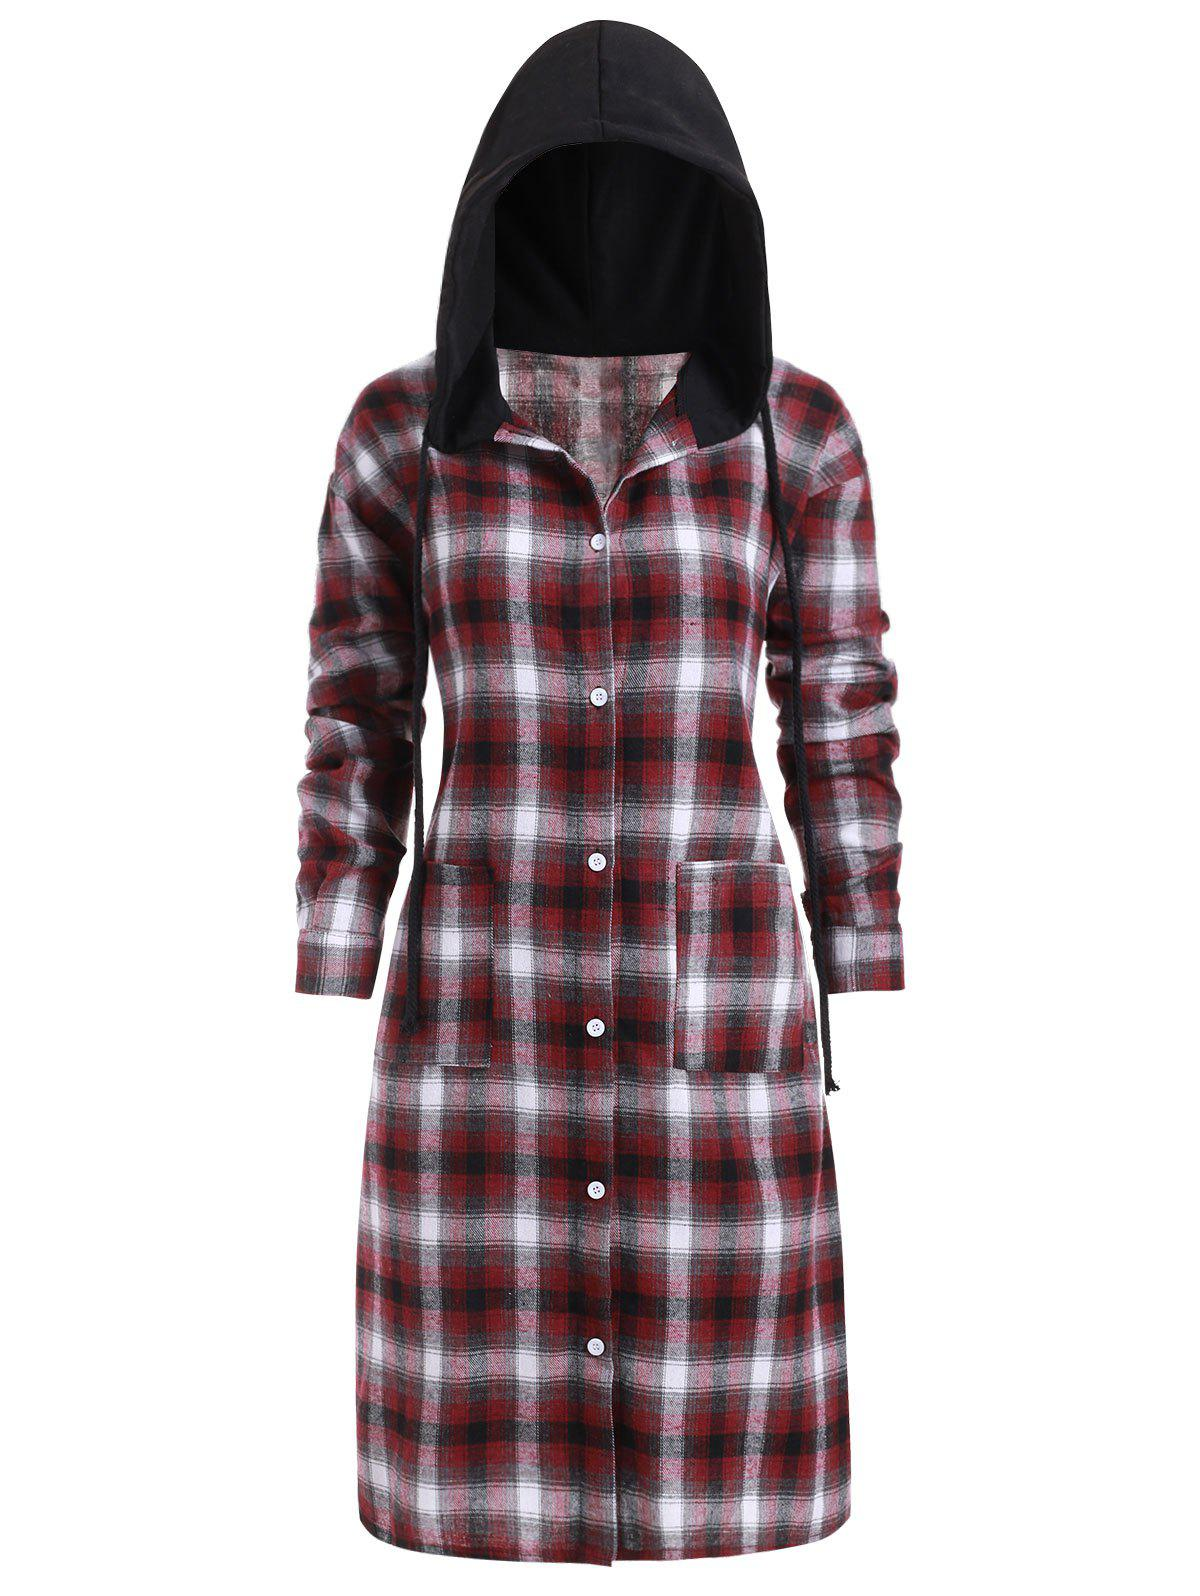 Fashion Slit Plaid Pockets Button Up Casual Plus Size Dress